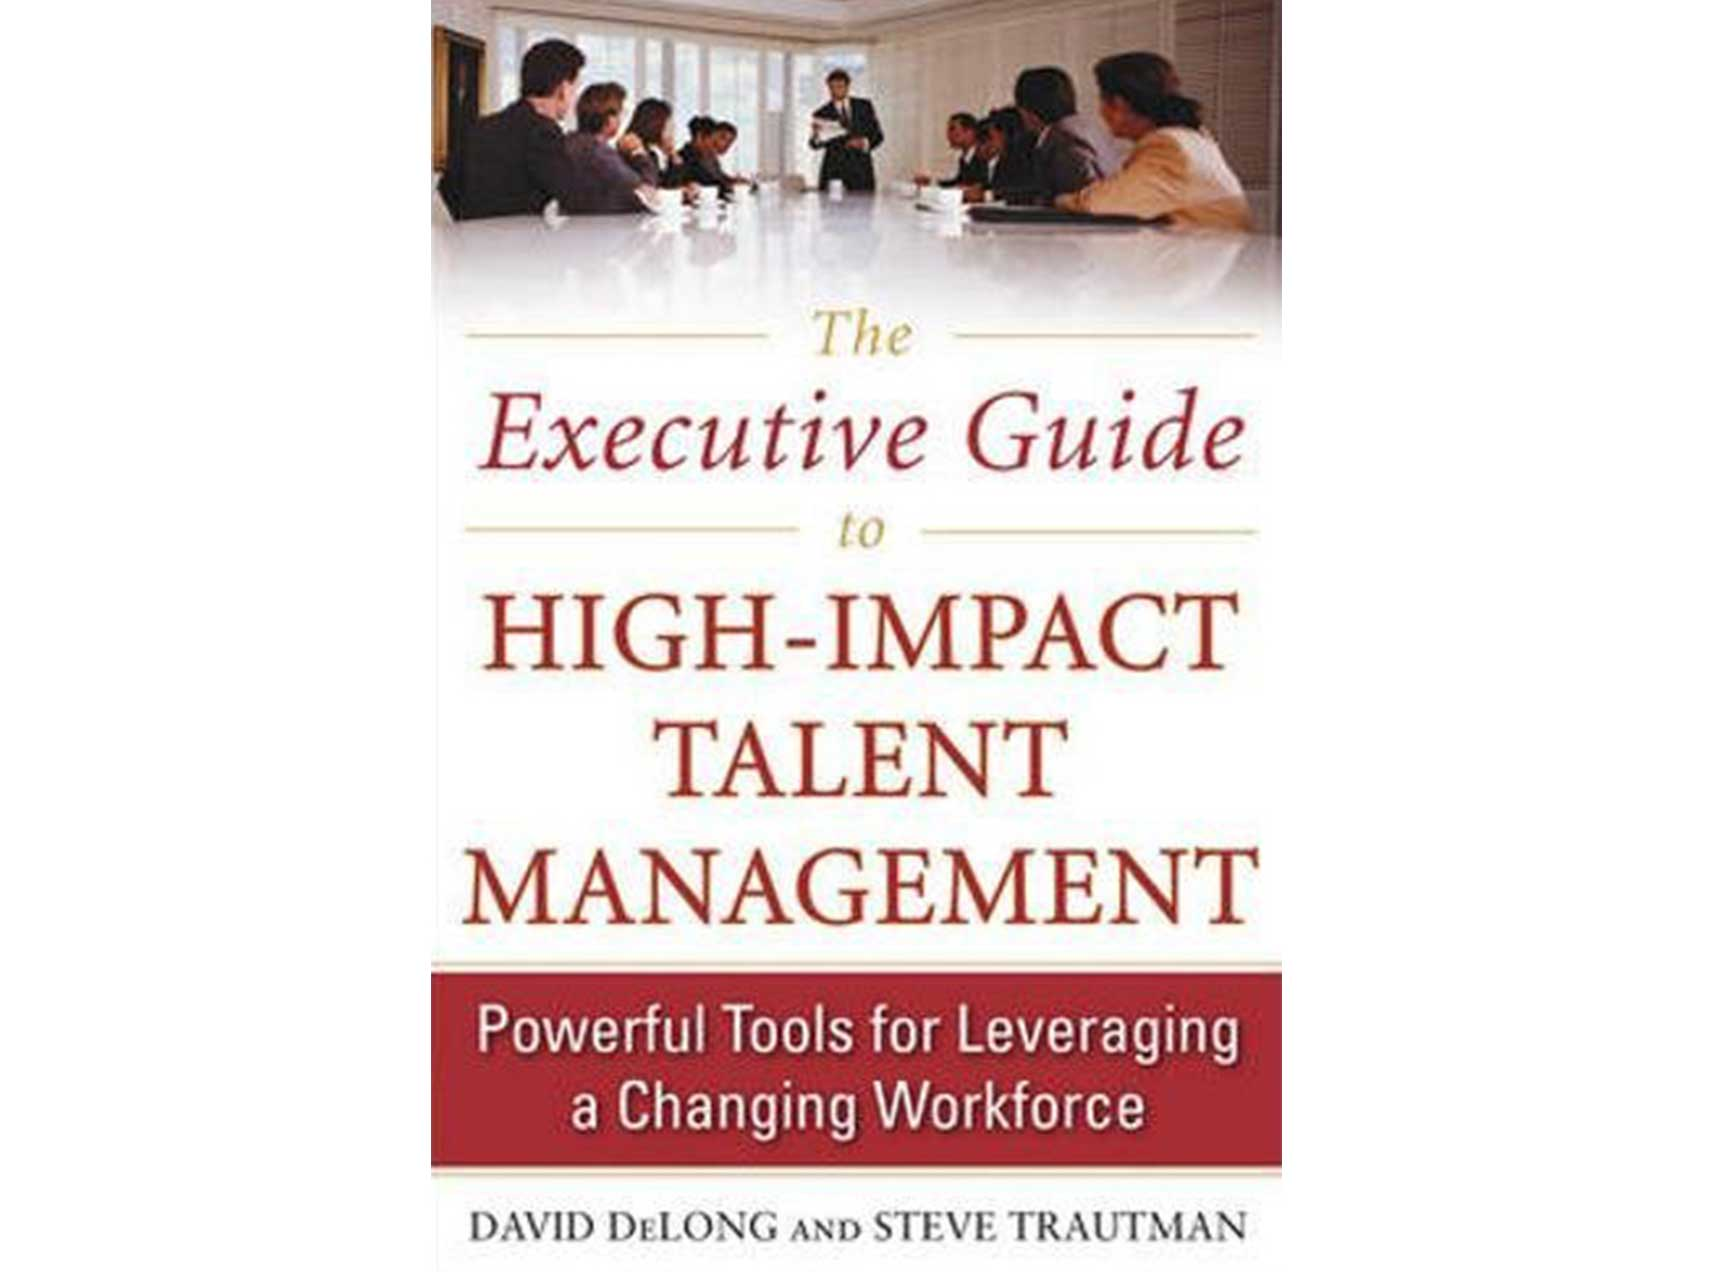 Executive Guide to High-Impact Talent Management Book